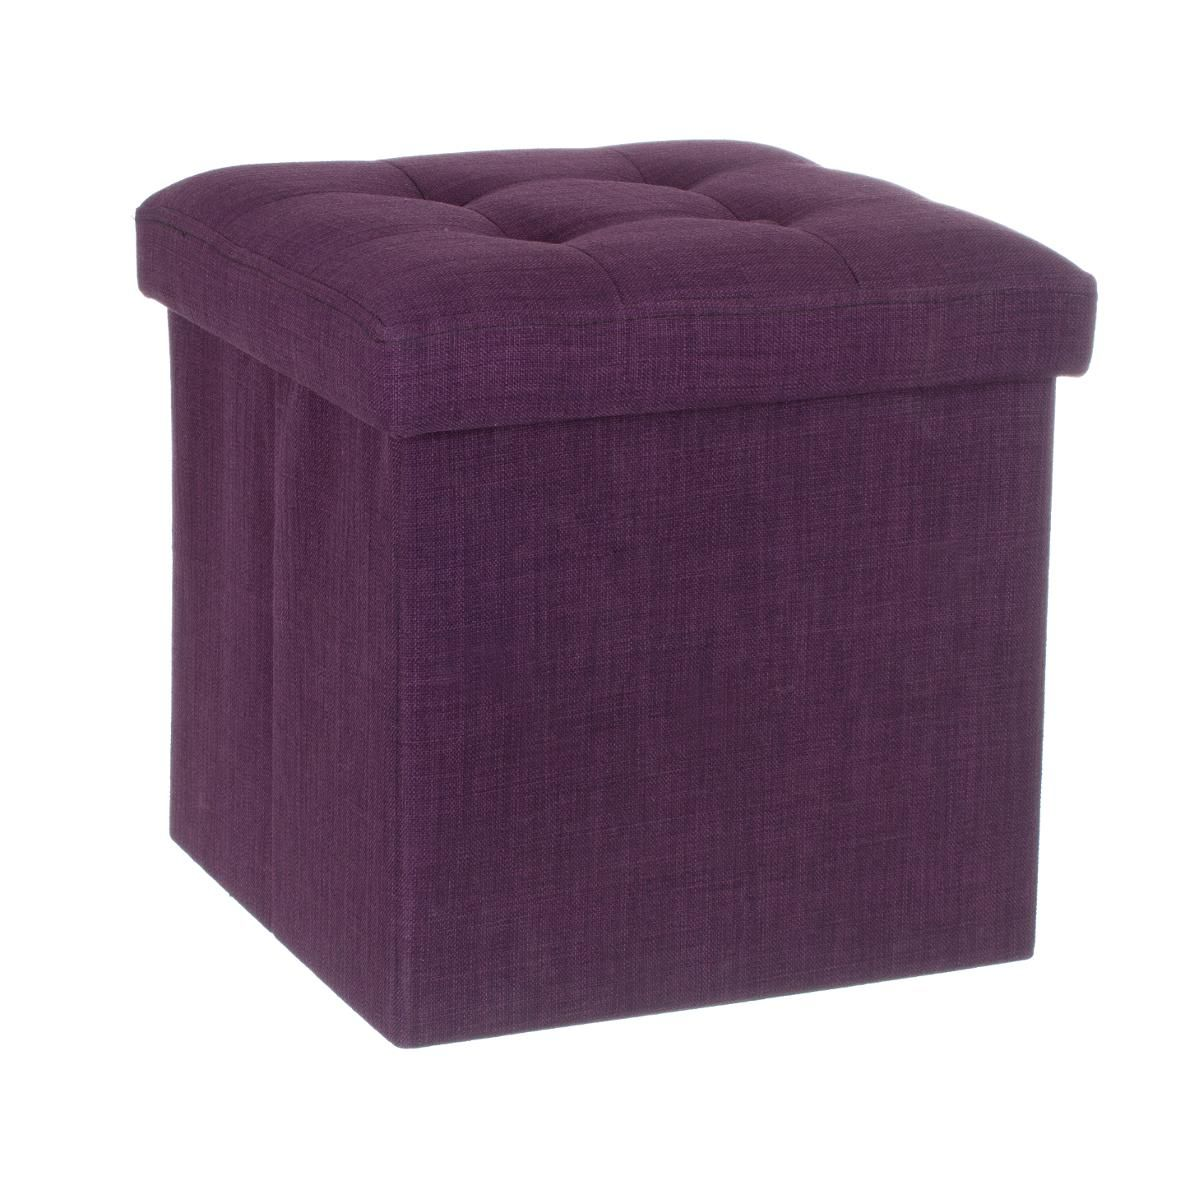 pouf de rangement lysandre violet coussin de sol et pouf eminza. Black Bedroom Furniture Sets. Home Design Ideas